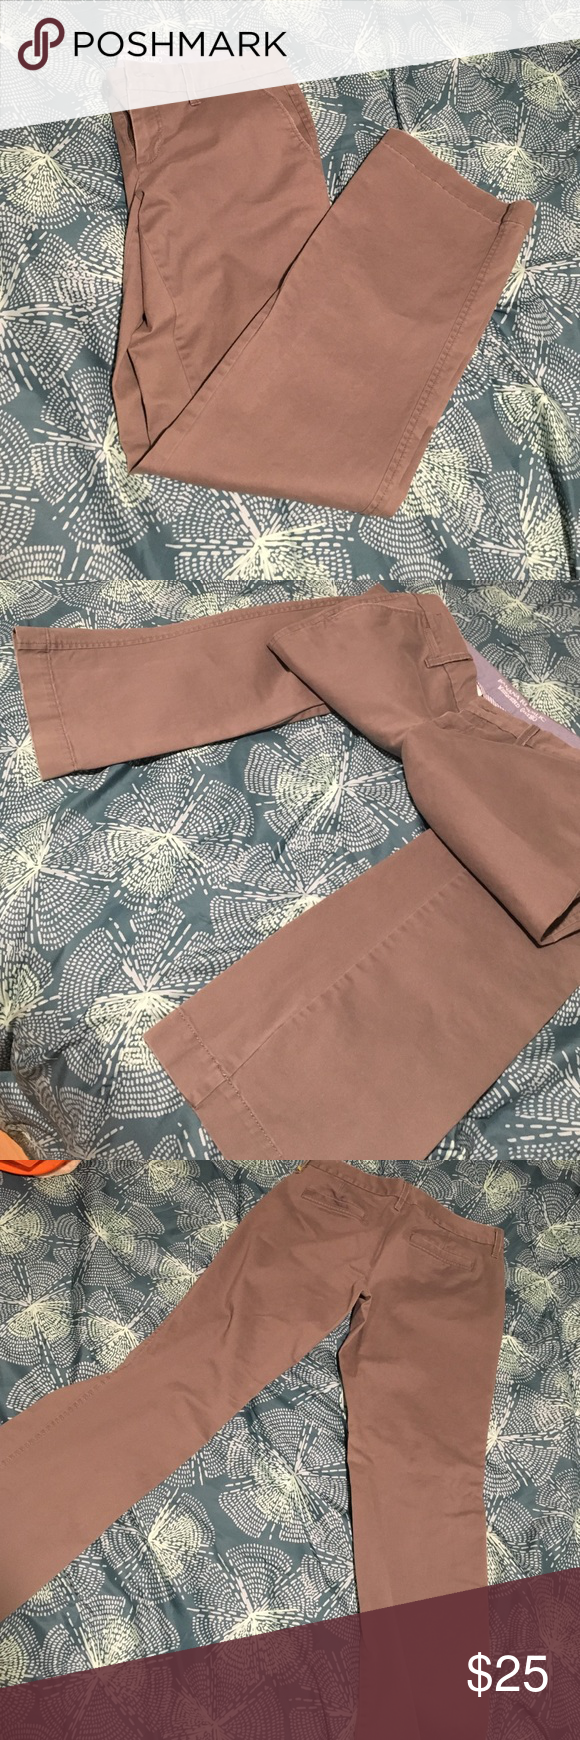 Banana Republic Weekend Chino Pants These casual/dress pants are perfect for your workplace or to wear to classes. They are made of soft fabric that's a brownish gray color. A tiny bit of wear is staring to show on the seam of the edge of the front pockets but it's hardly noticeable. They're in great shape otherwise! Banana Republic Pants Trousers